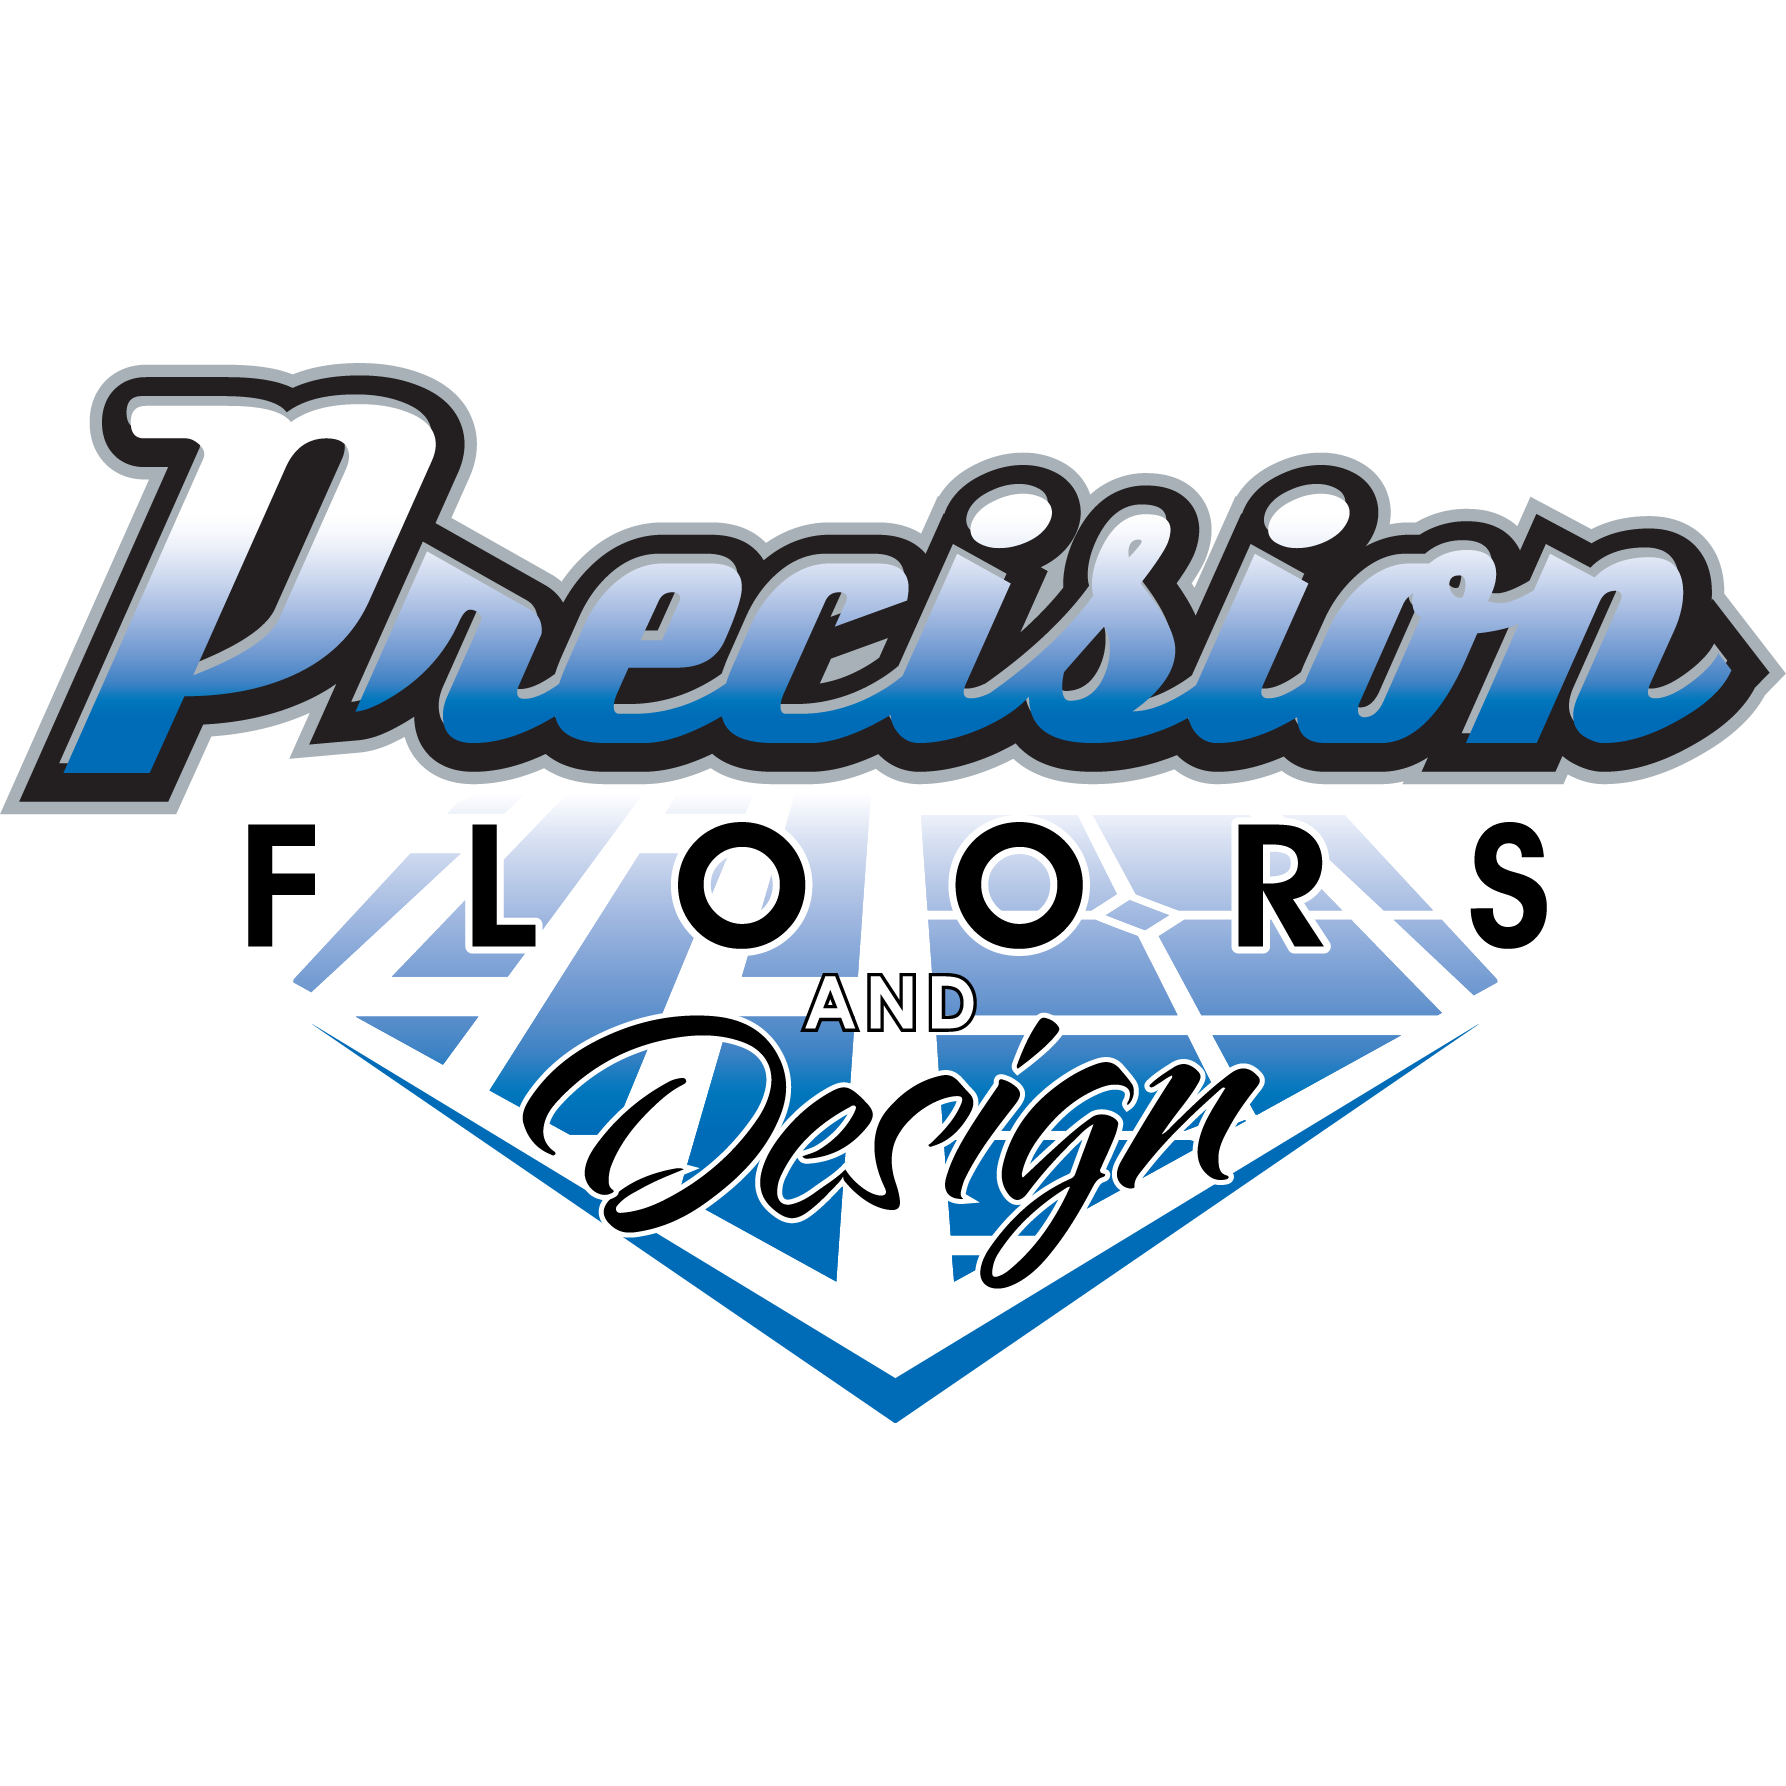 Precision Floors and Design